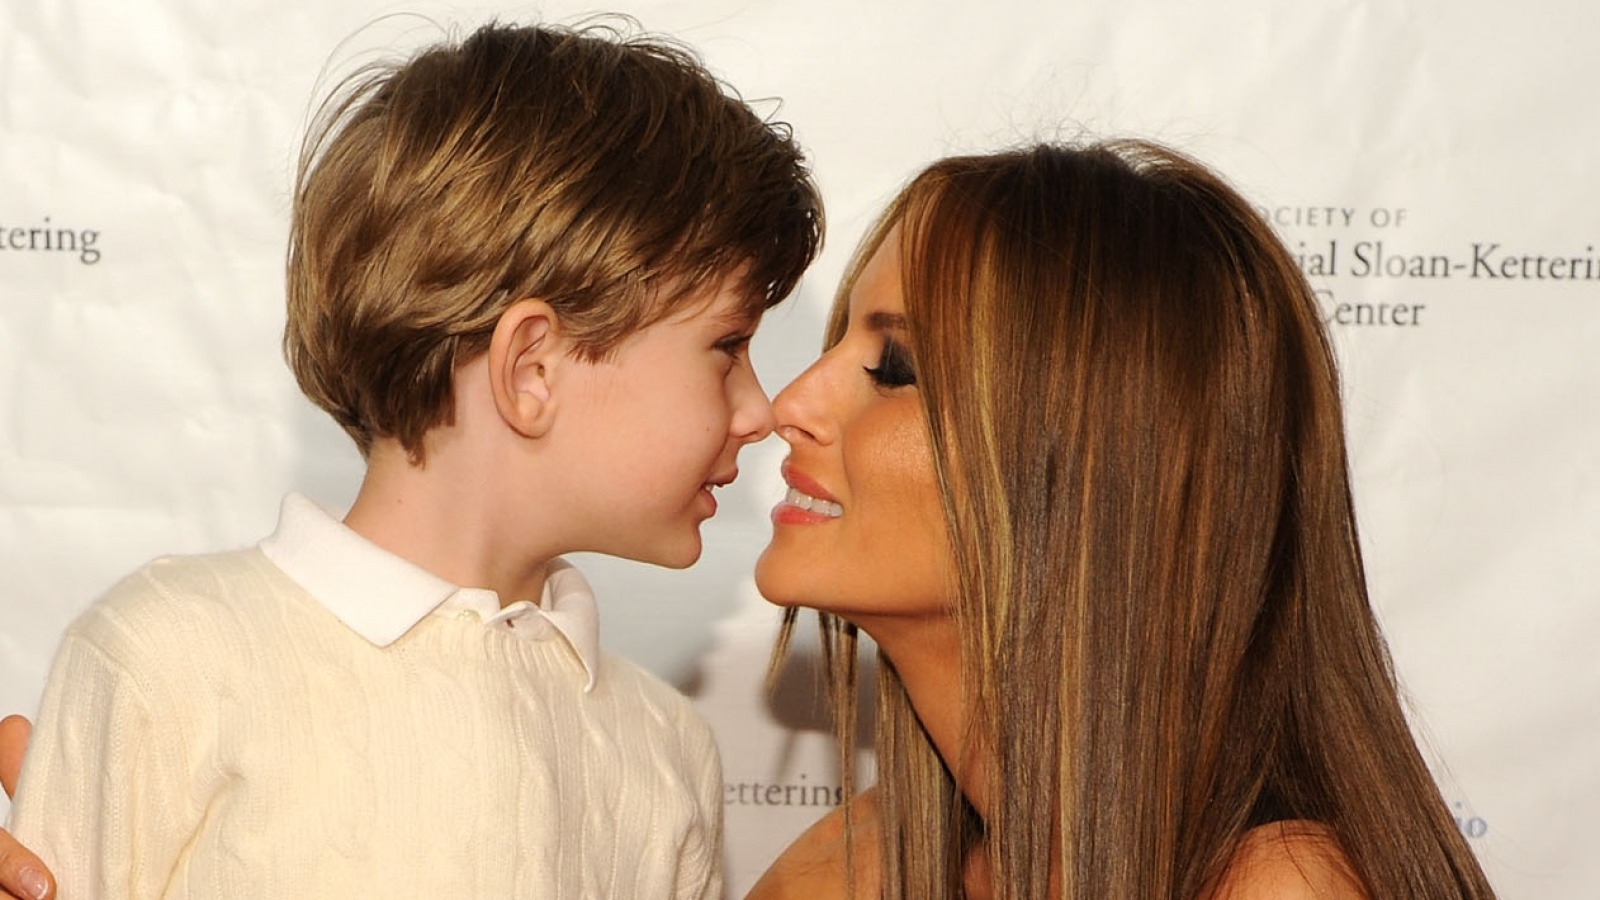 What's Really Going On With Melania And Barron Trump